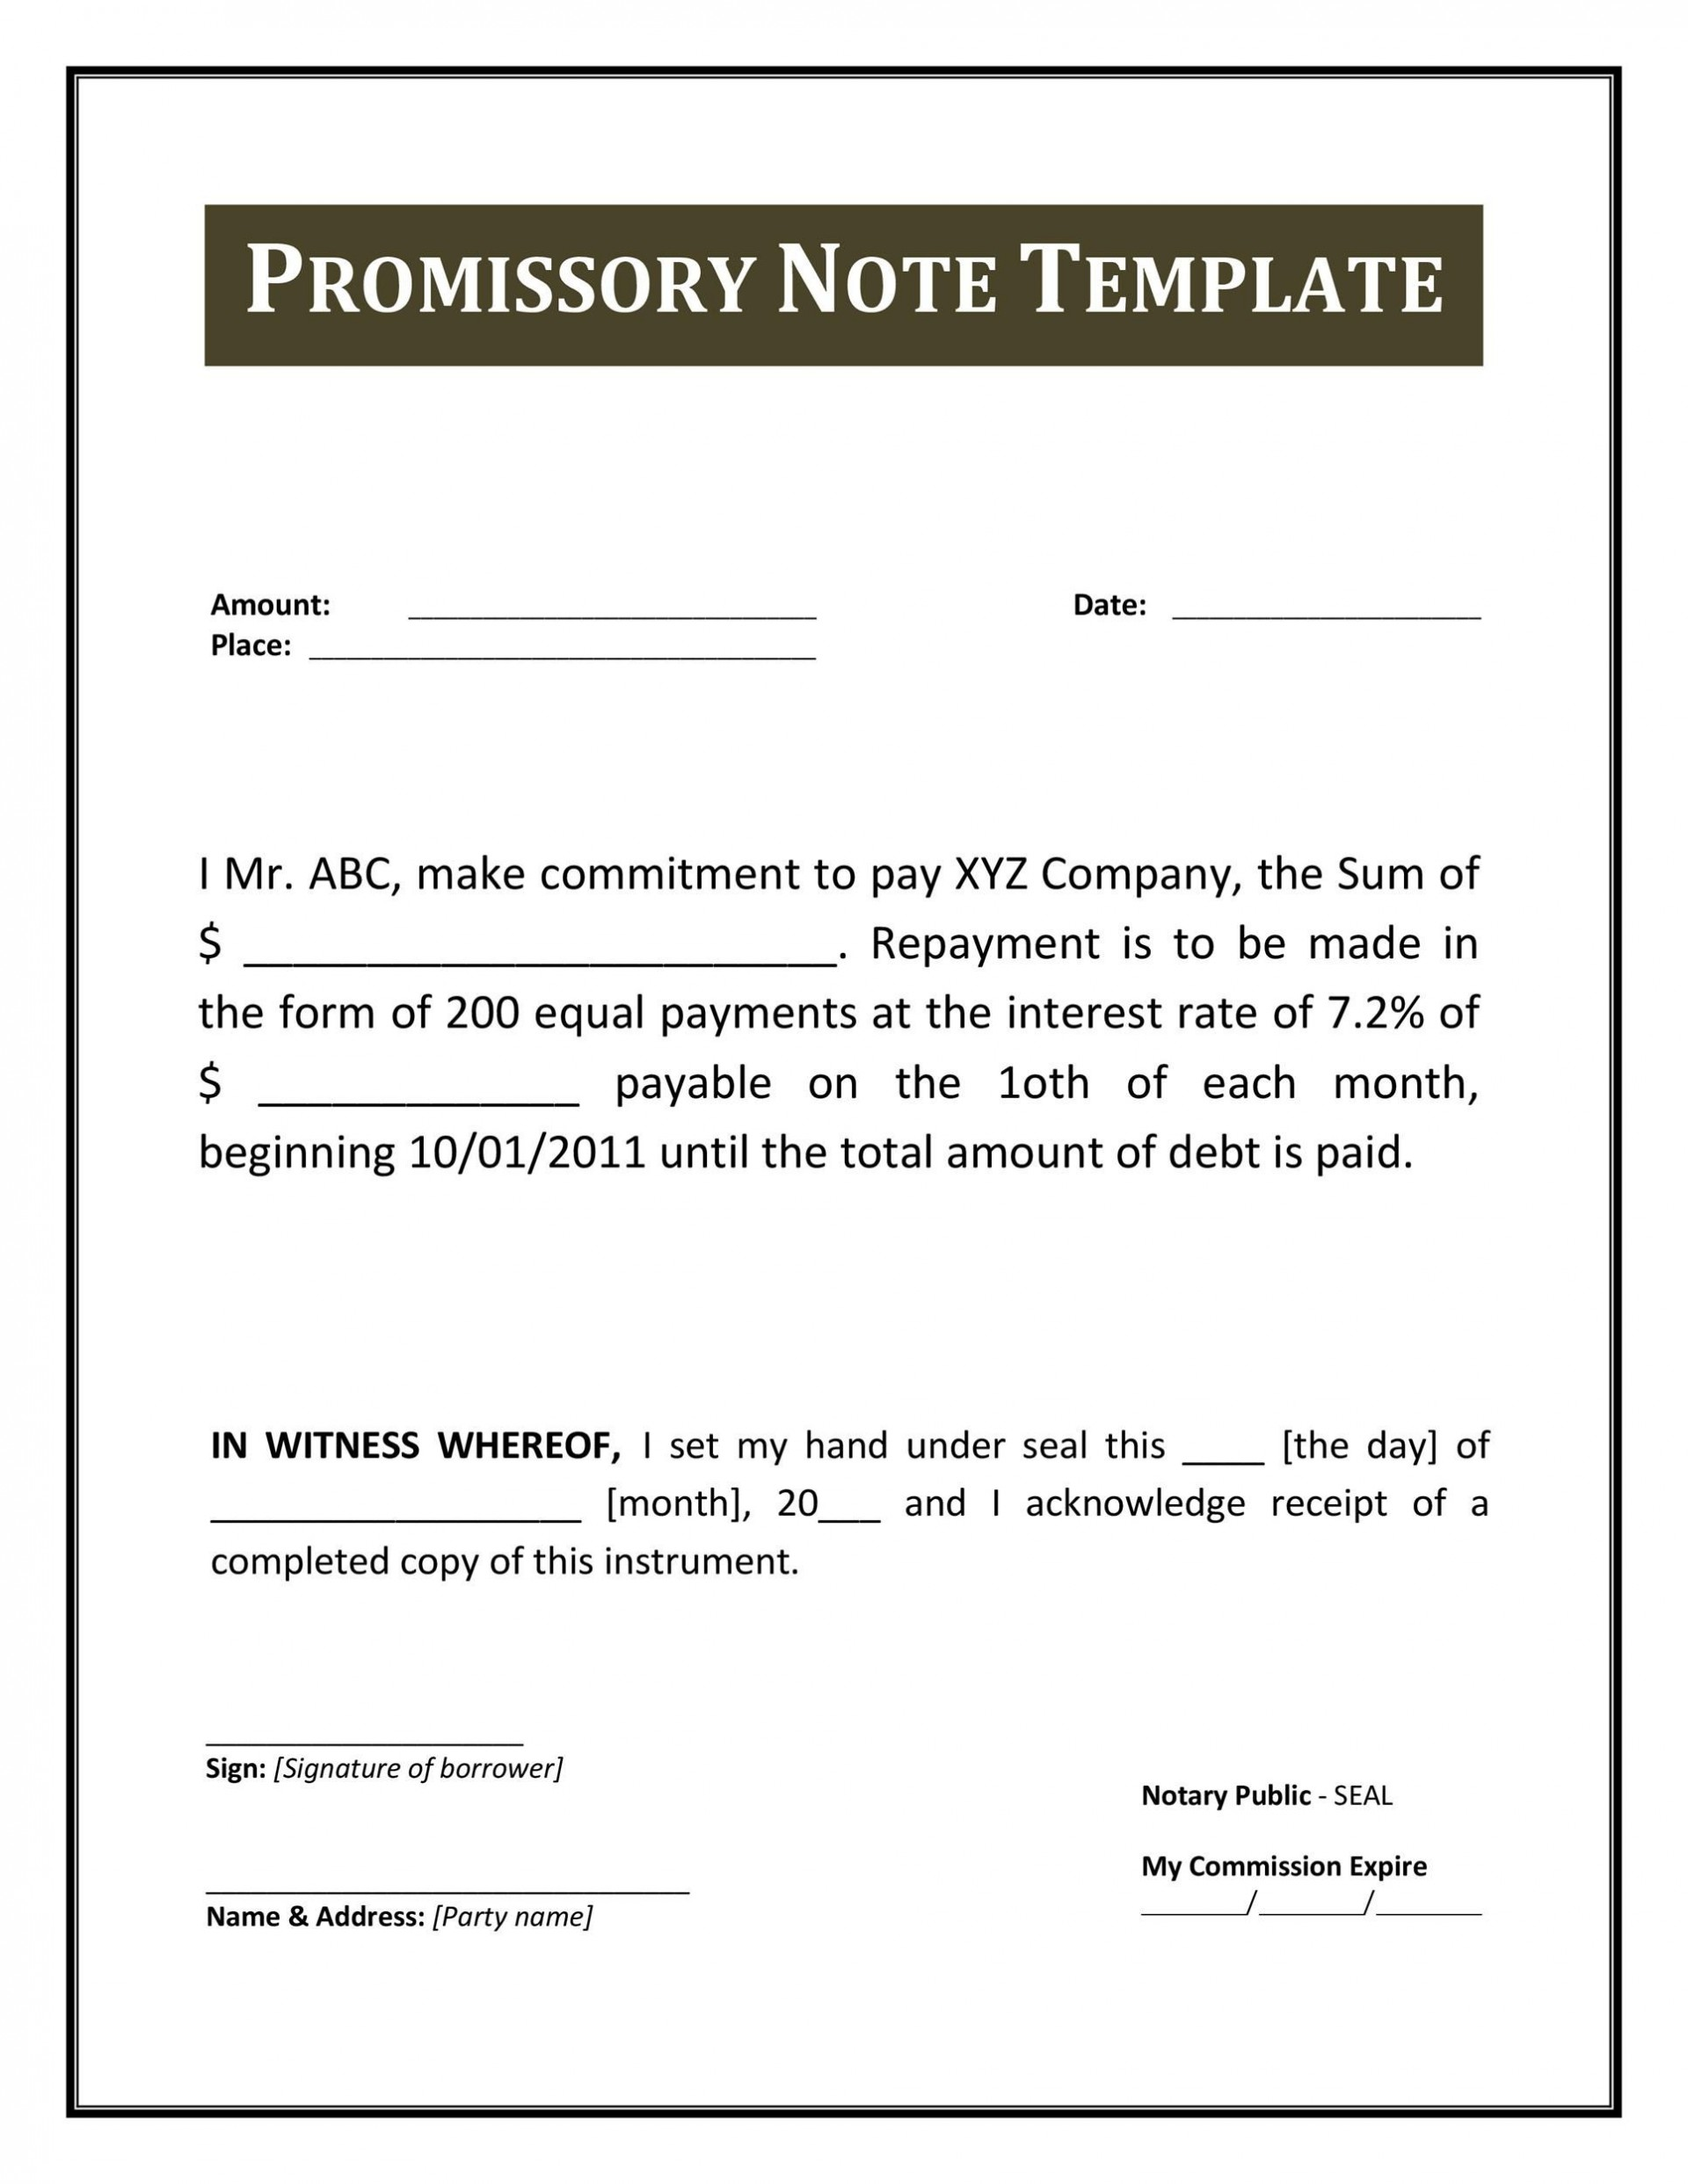 003 Incredible Promissory Note Word Template Design  2007 Document Uk India1920